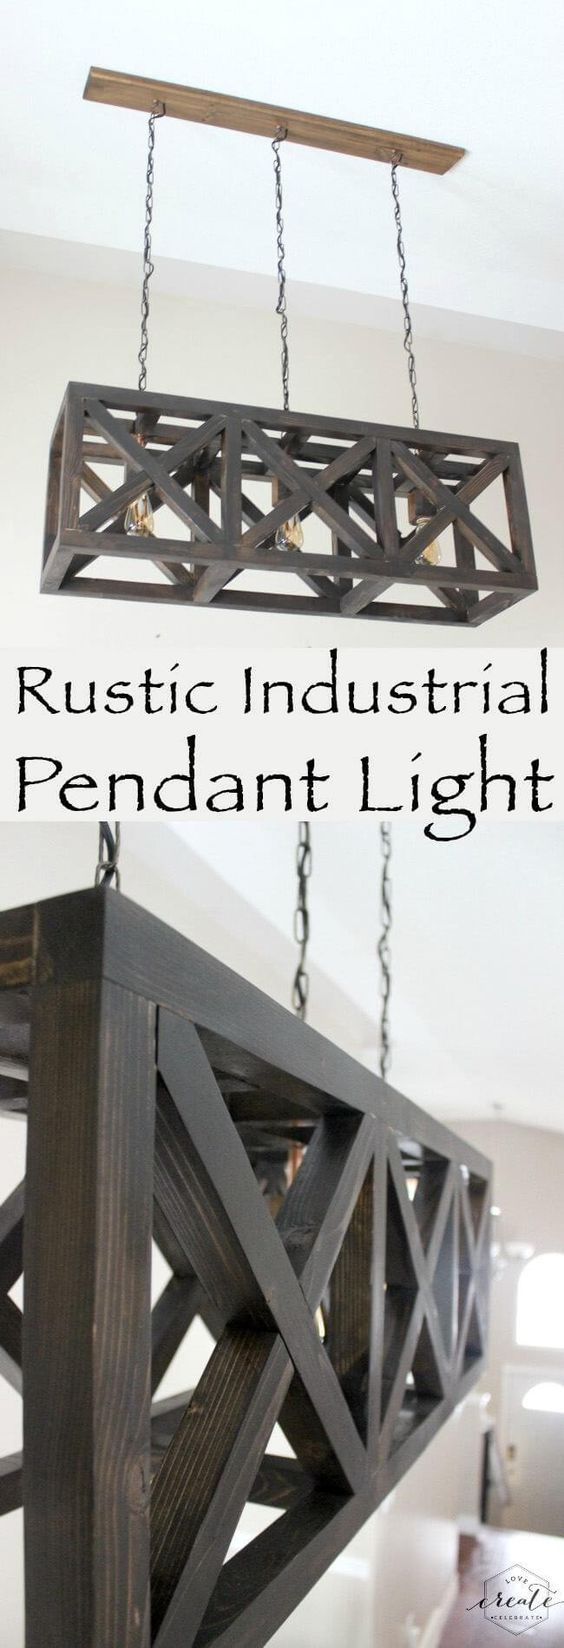 Best 25+ Craftsman pendant lighting ideas on Pinterest | Craftsman ...